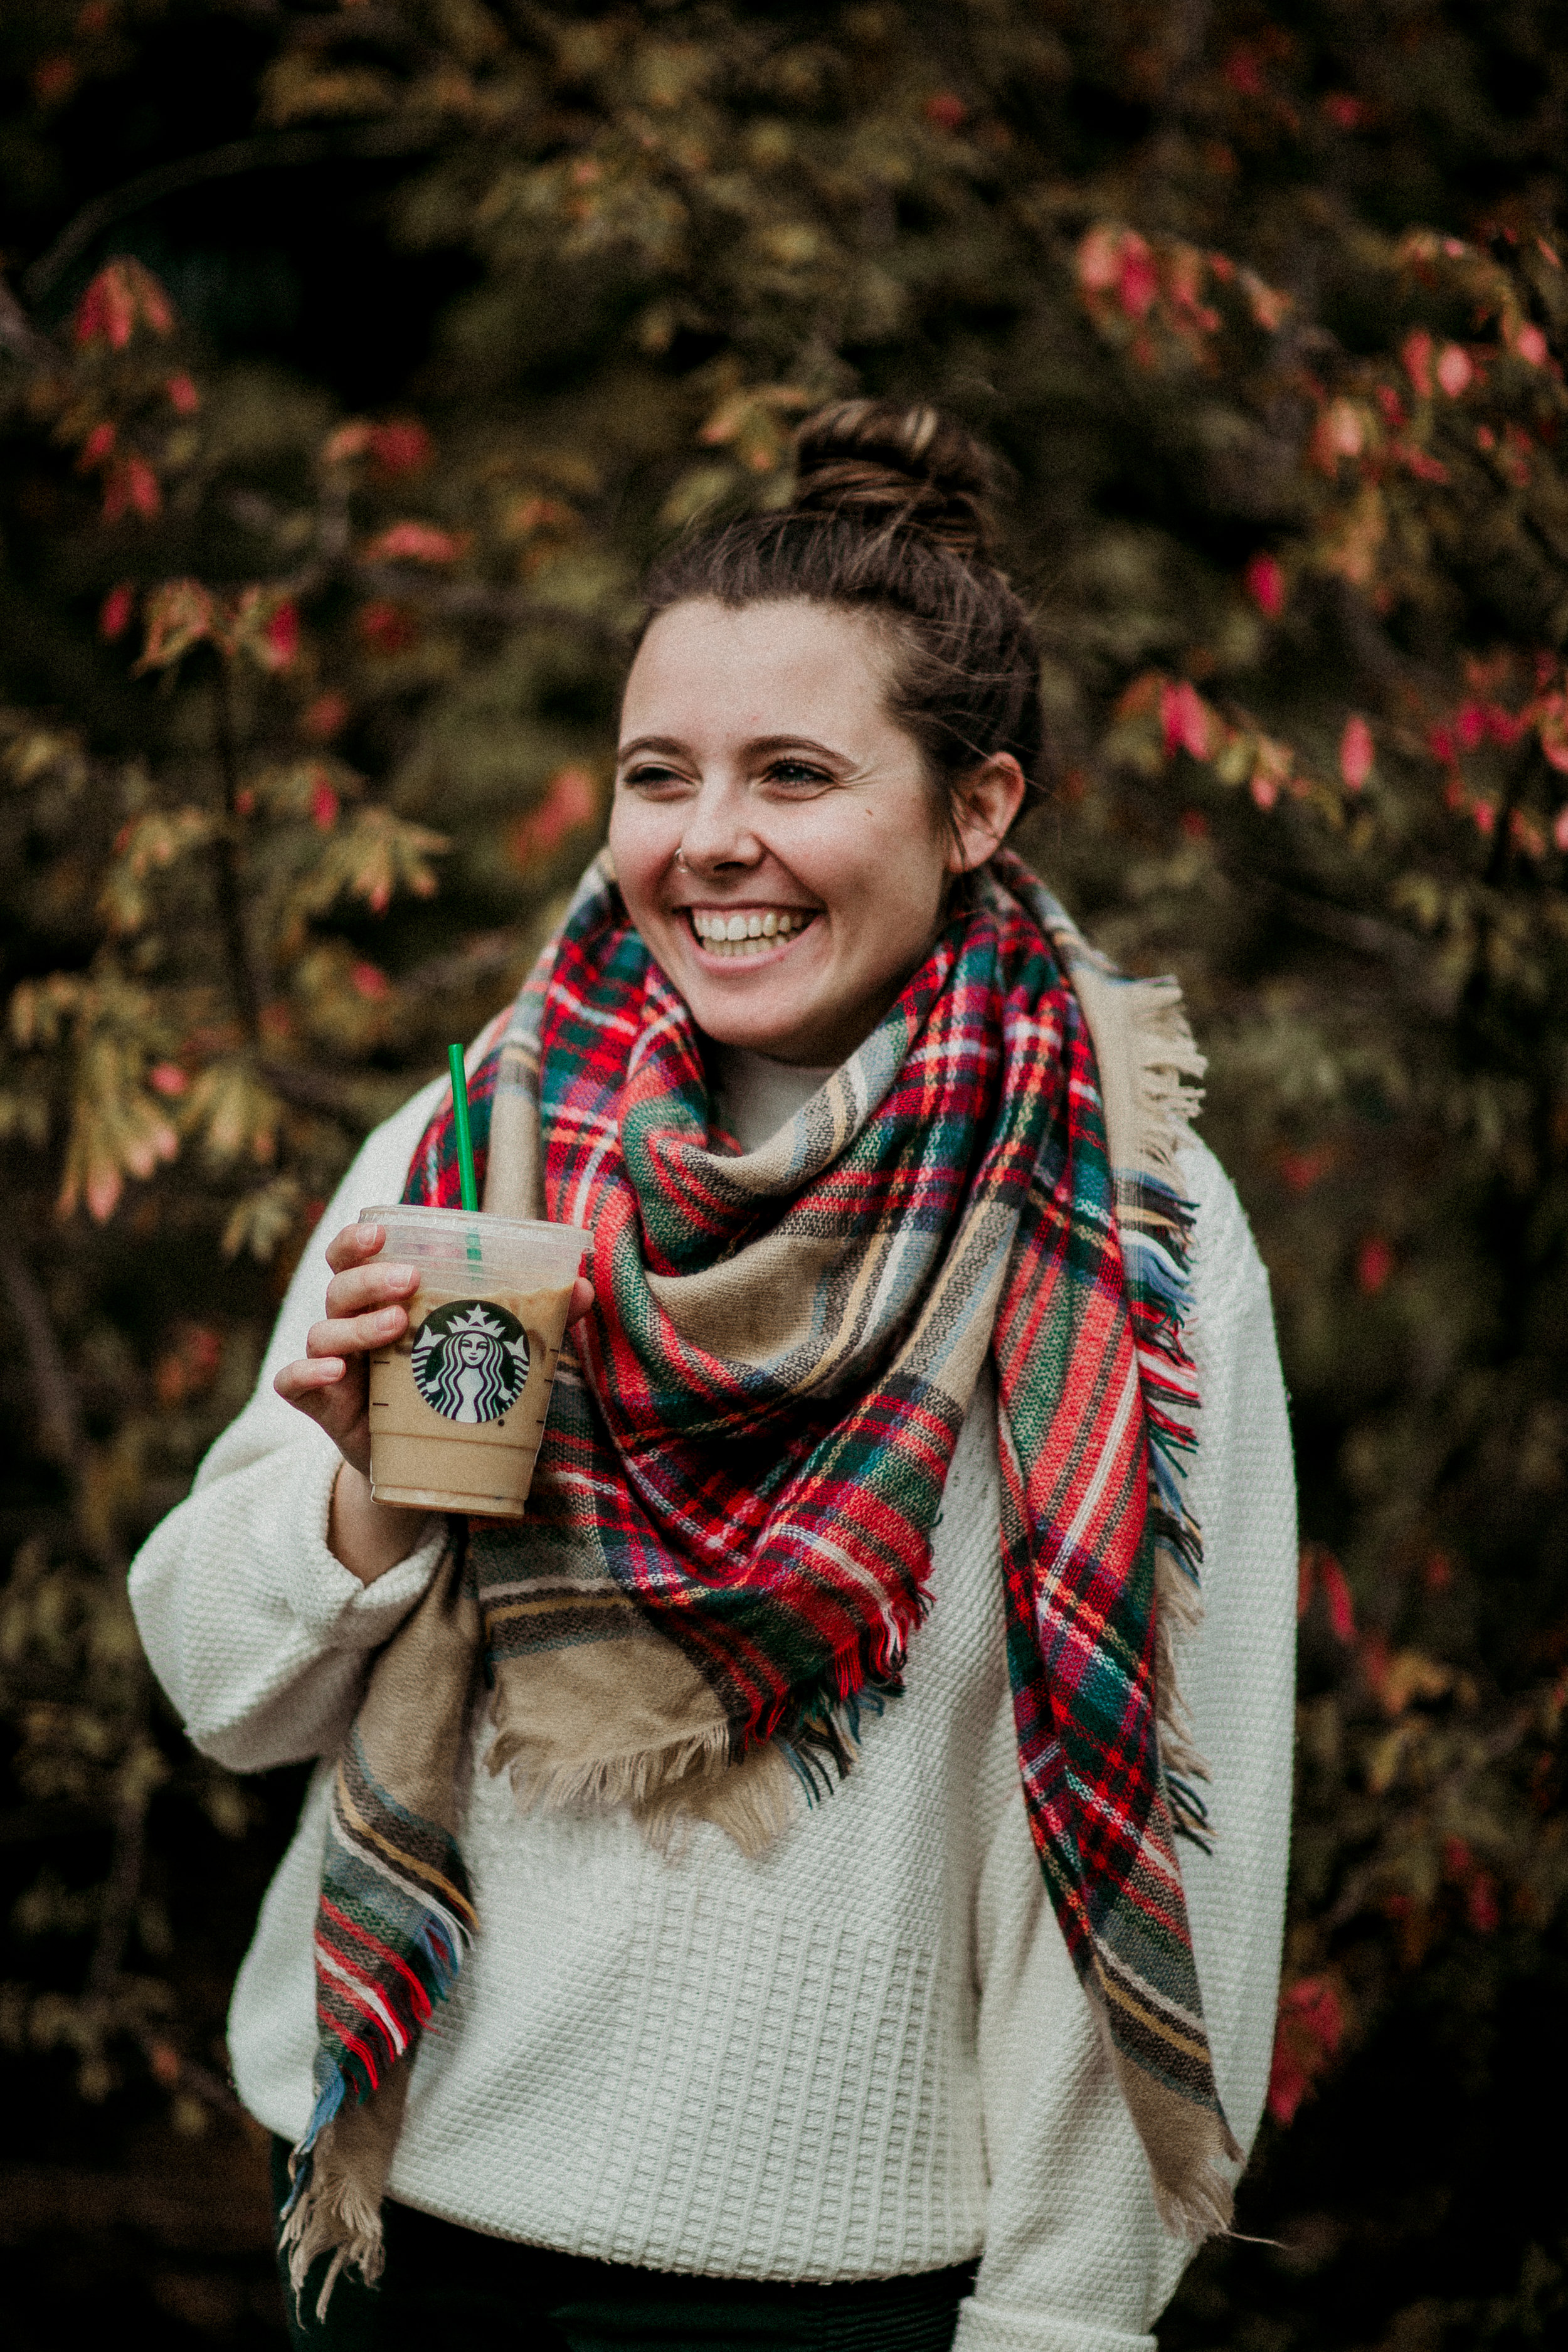 """Of course, to start off the month I wanted to do a cute fall pic to post to   Instagram  . I don't like pumpkin spice lattes (shocker since this image screams """"basic"""") but still included Starbucks in hopes of getting sponsored. I dream big."""